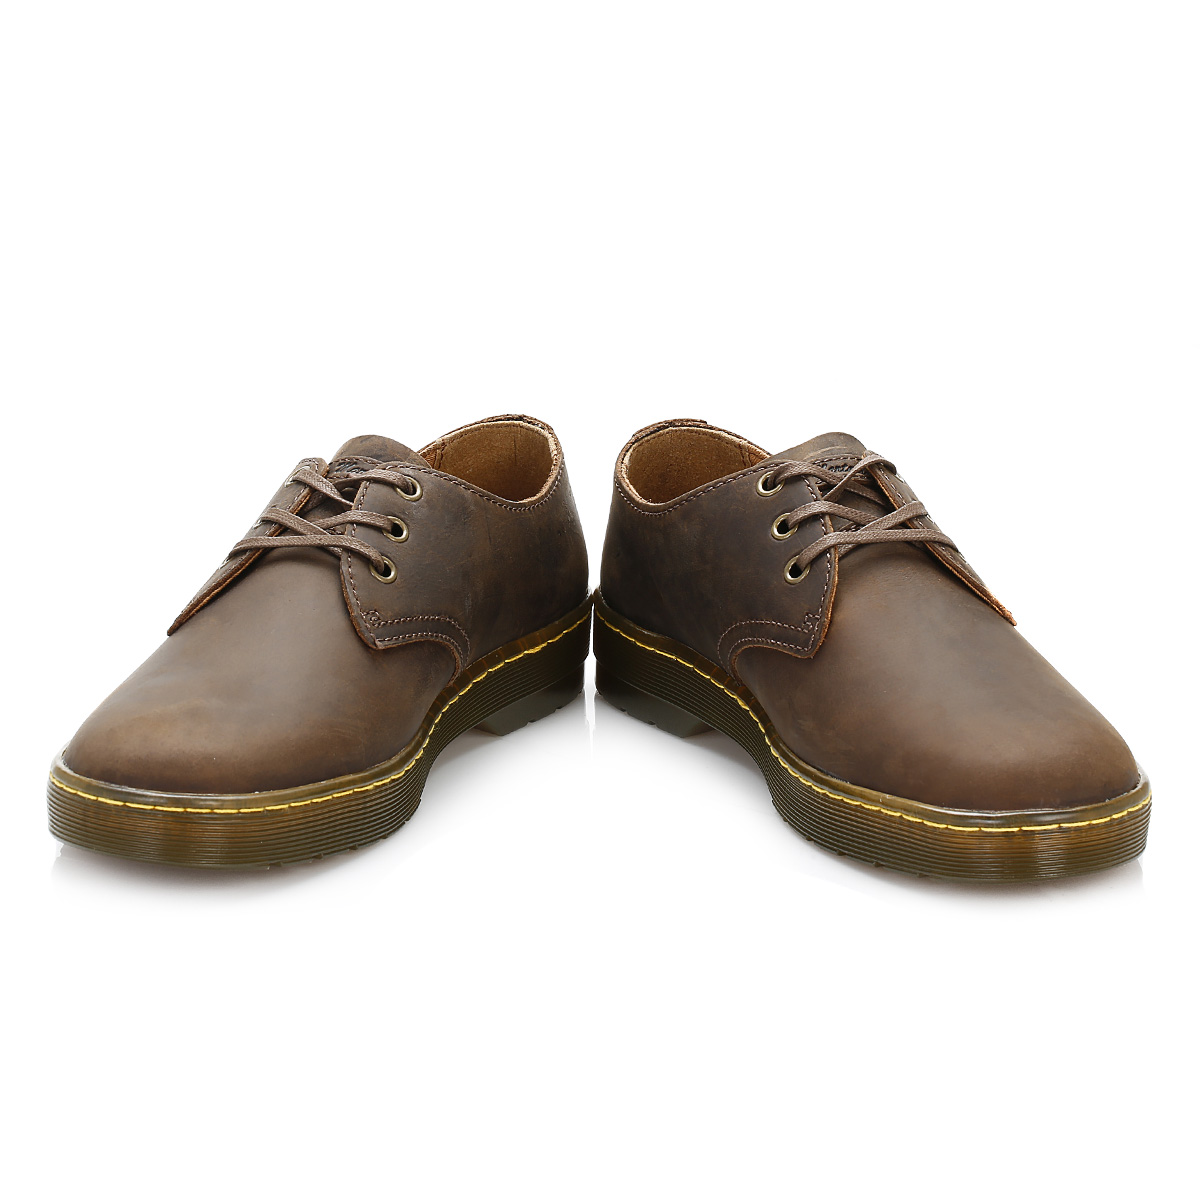 dr martens mens brown leather derby shoes lace up smart